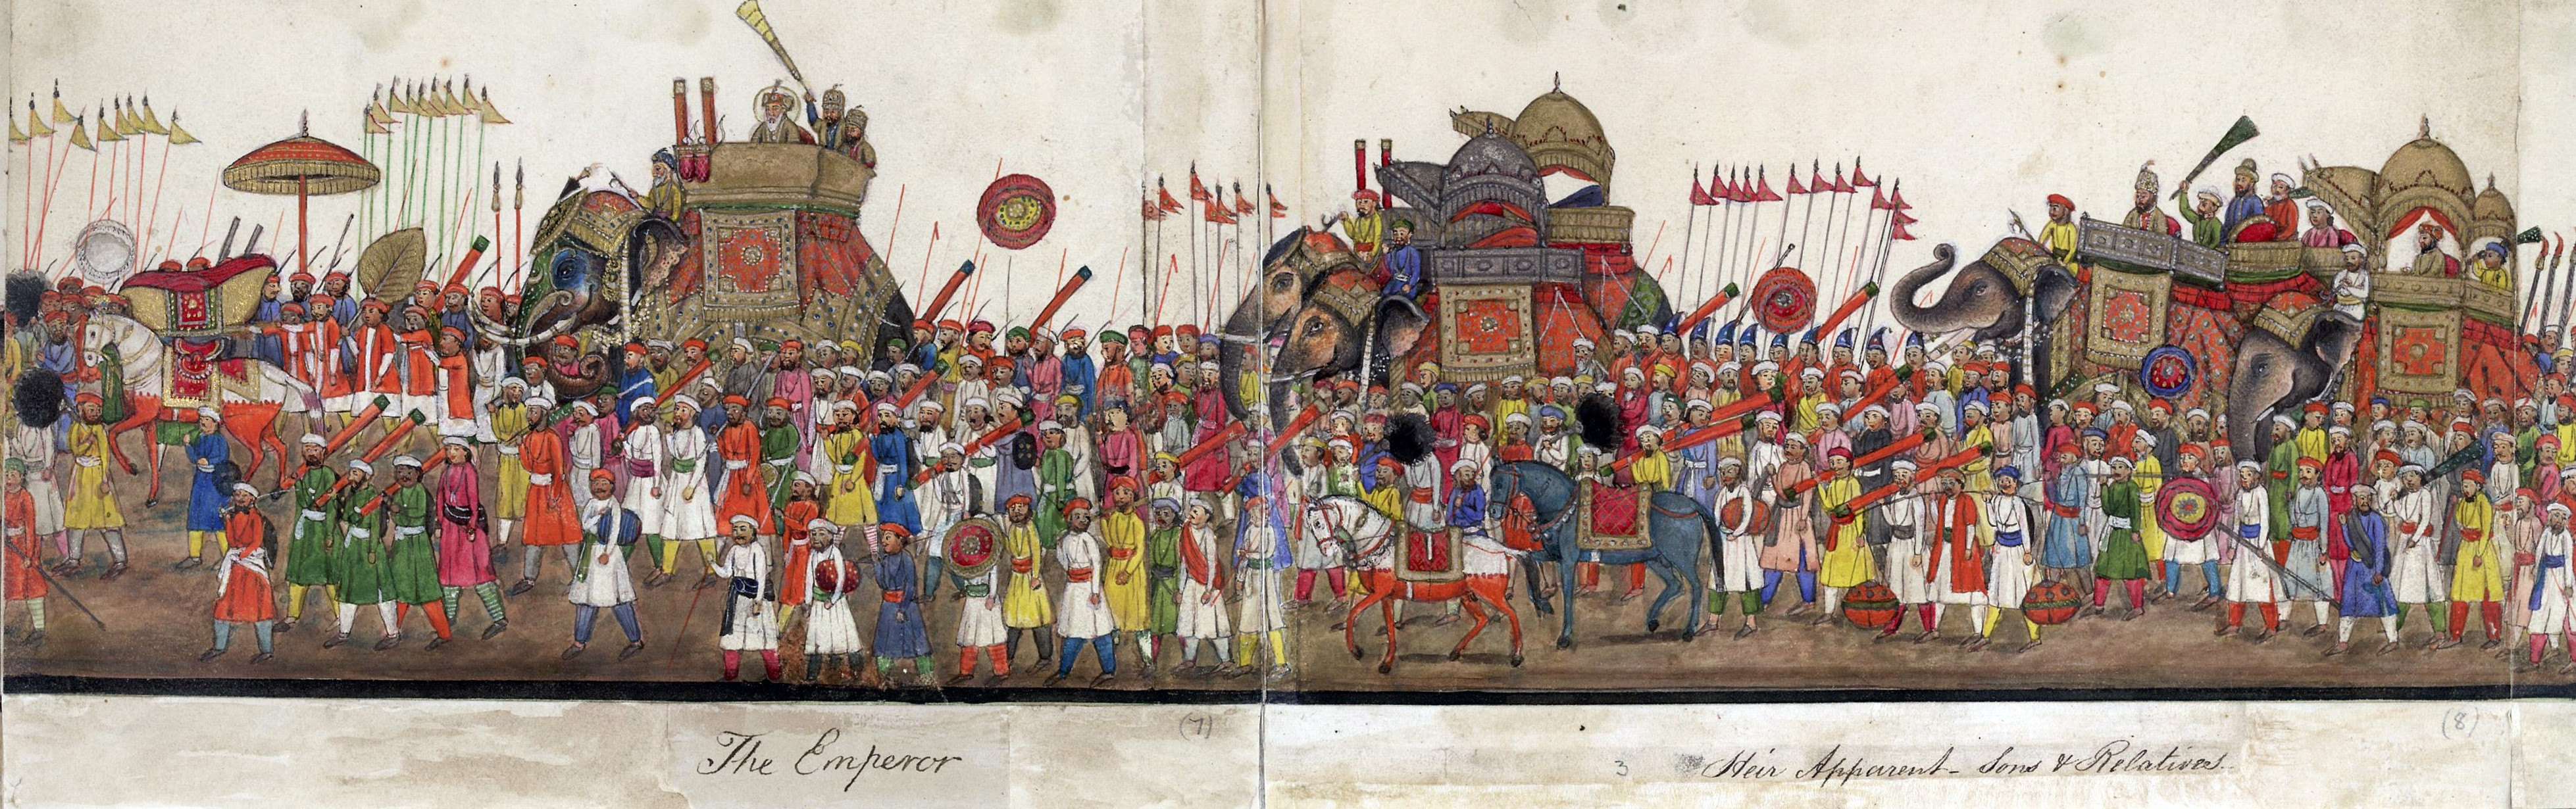 A panorama in 12 folds showing the procession of the last Mughal Emperor Bahadur Shah II to celebrate the feast of the Eid ul-Fitr in 1843.